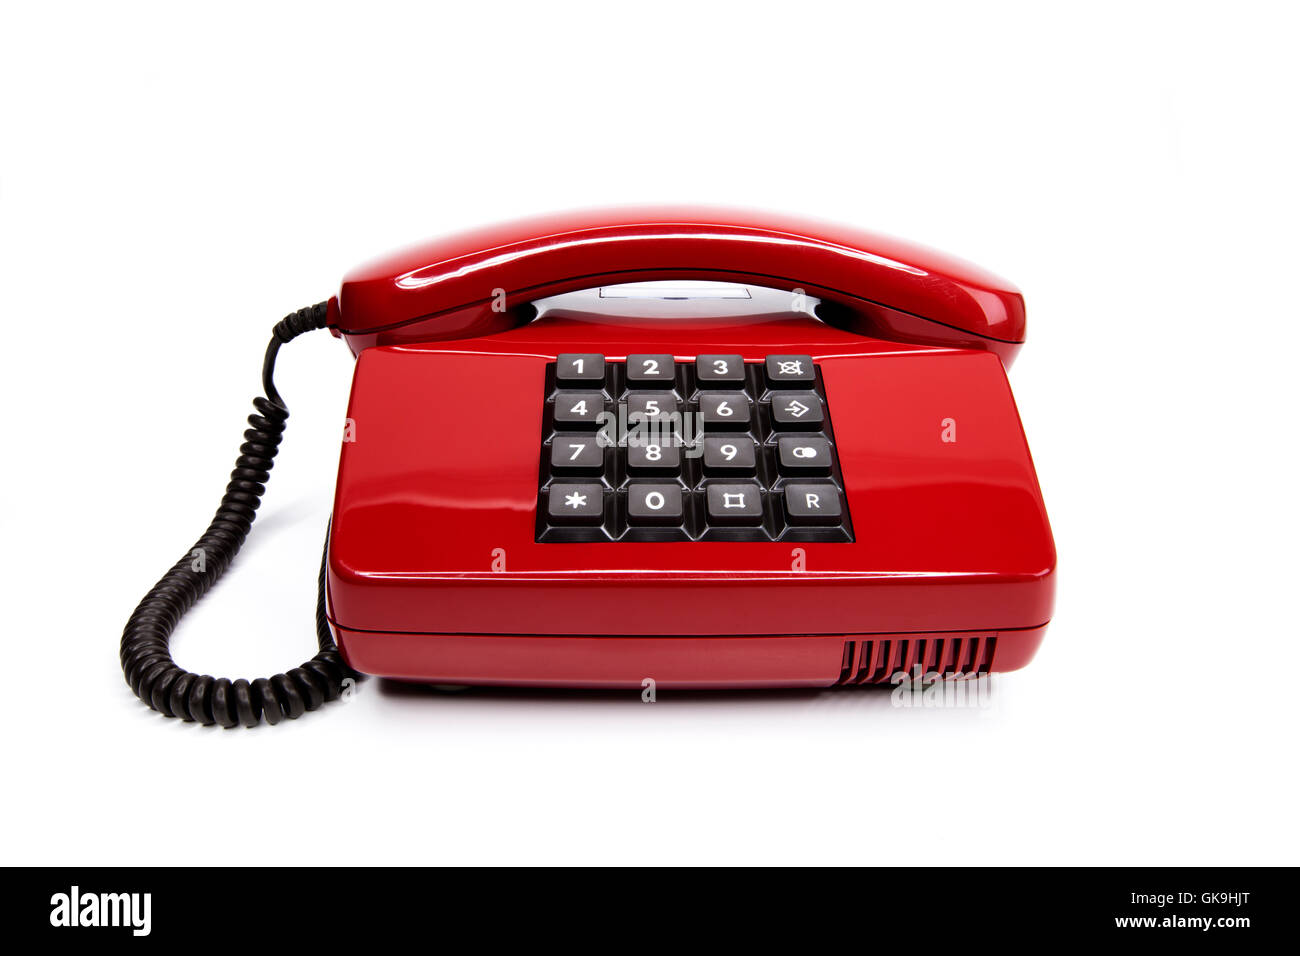 classic red telephone from the eighties - Stock Image